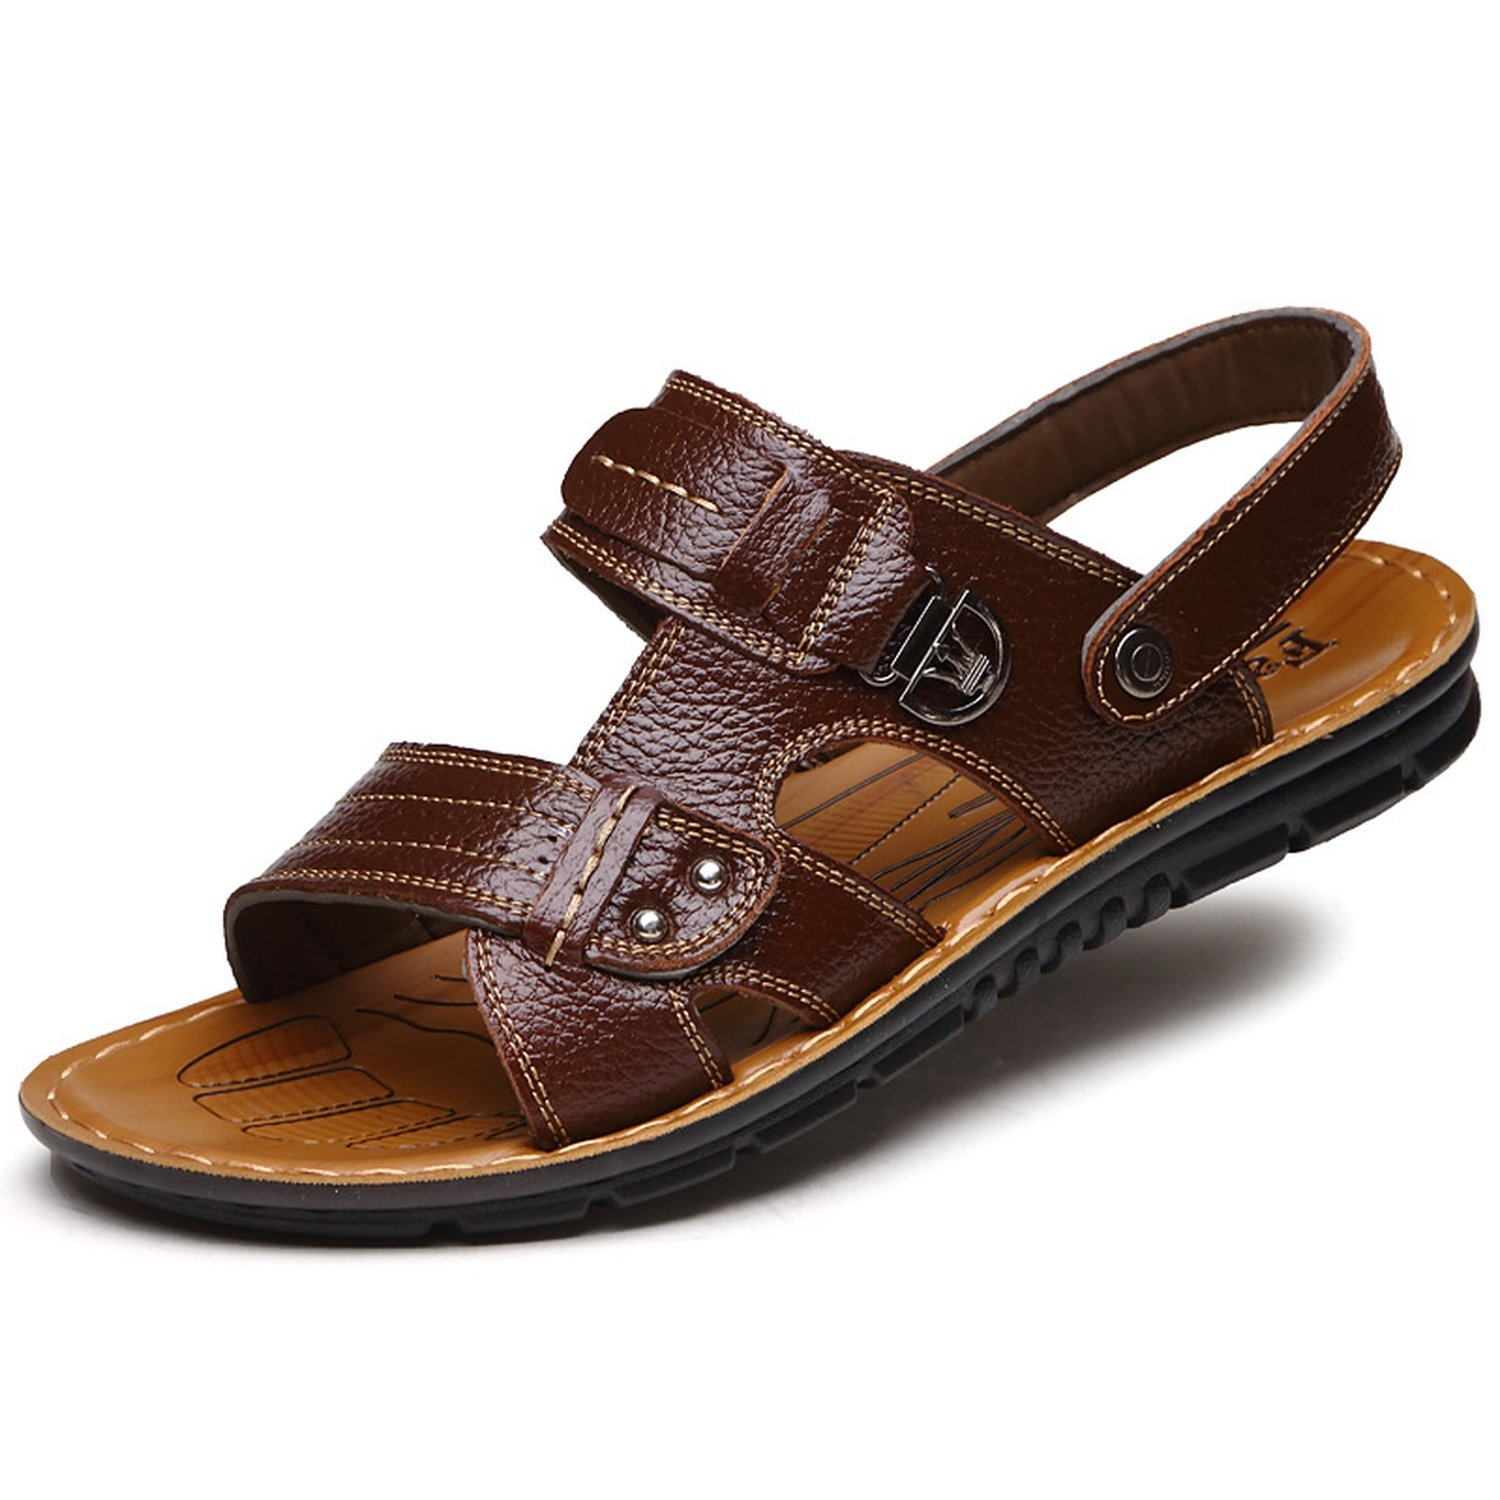 Mens Outdoor Sandal Beach Shoes Synthetic Leather Open-Toe Sandal